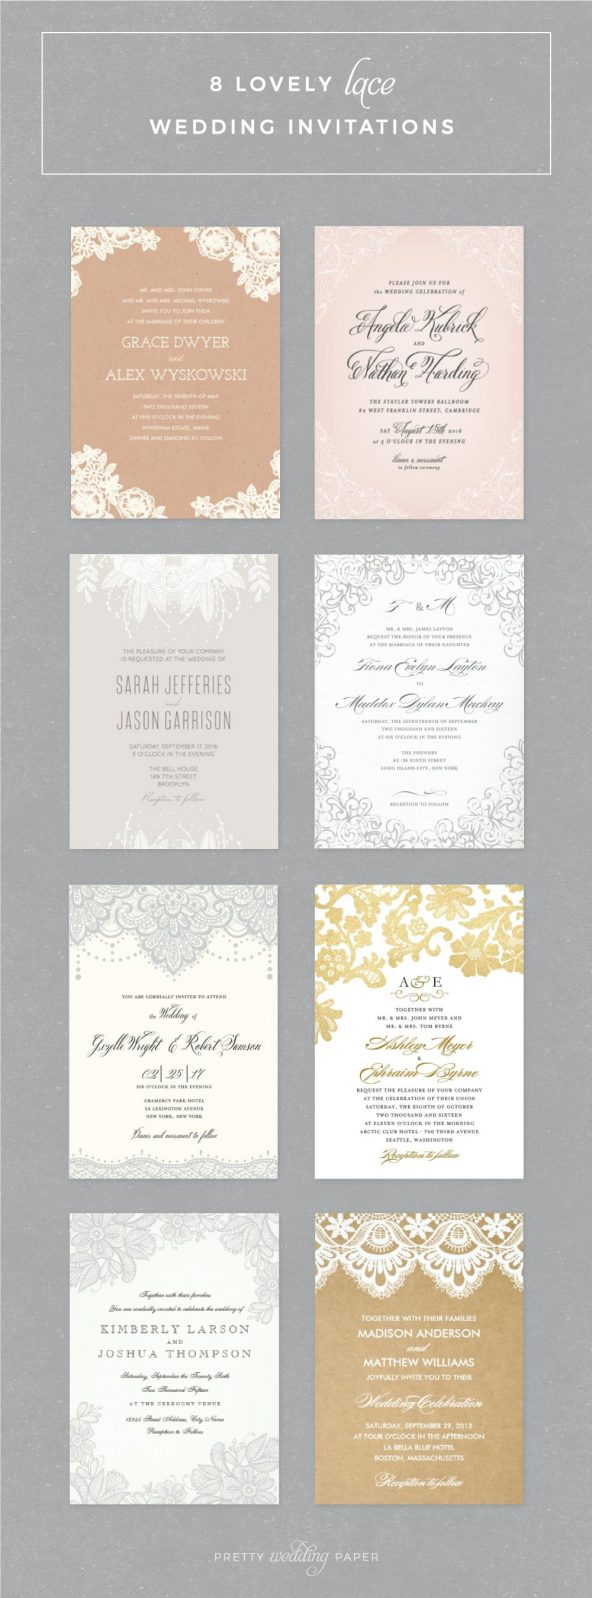 Pretty Wedding Paper | Wedding Invitation Ideas & Inspiration